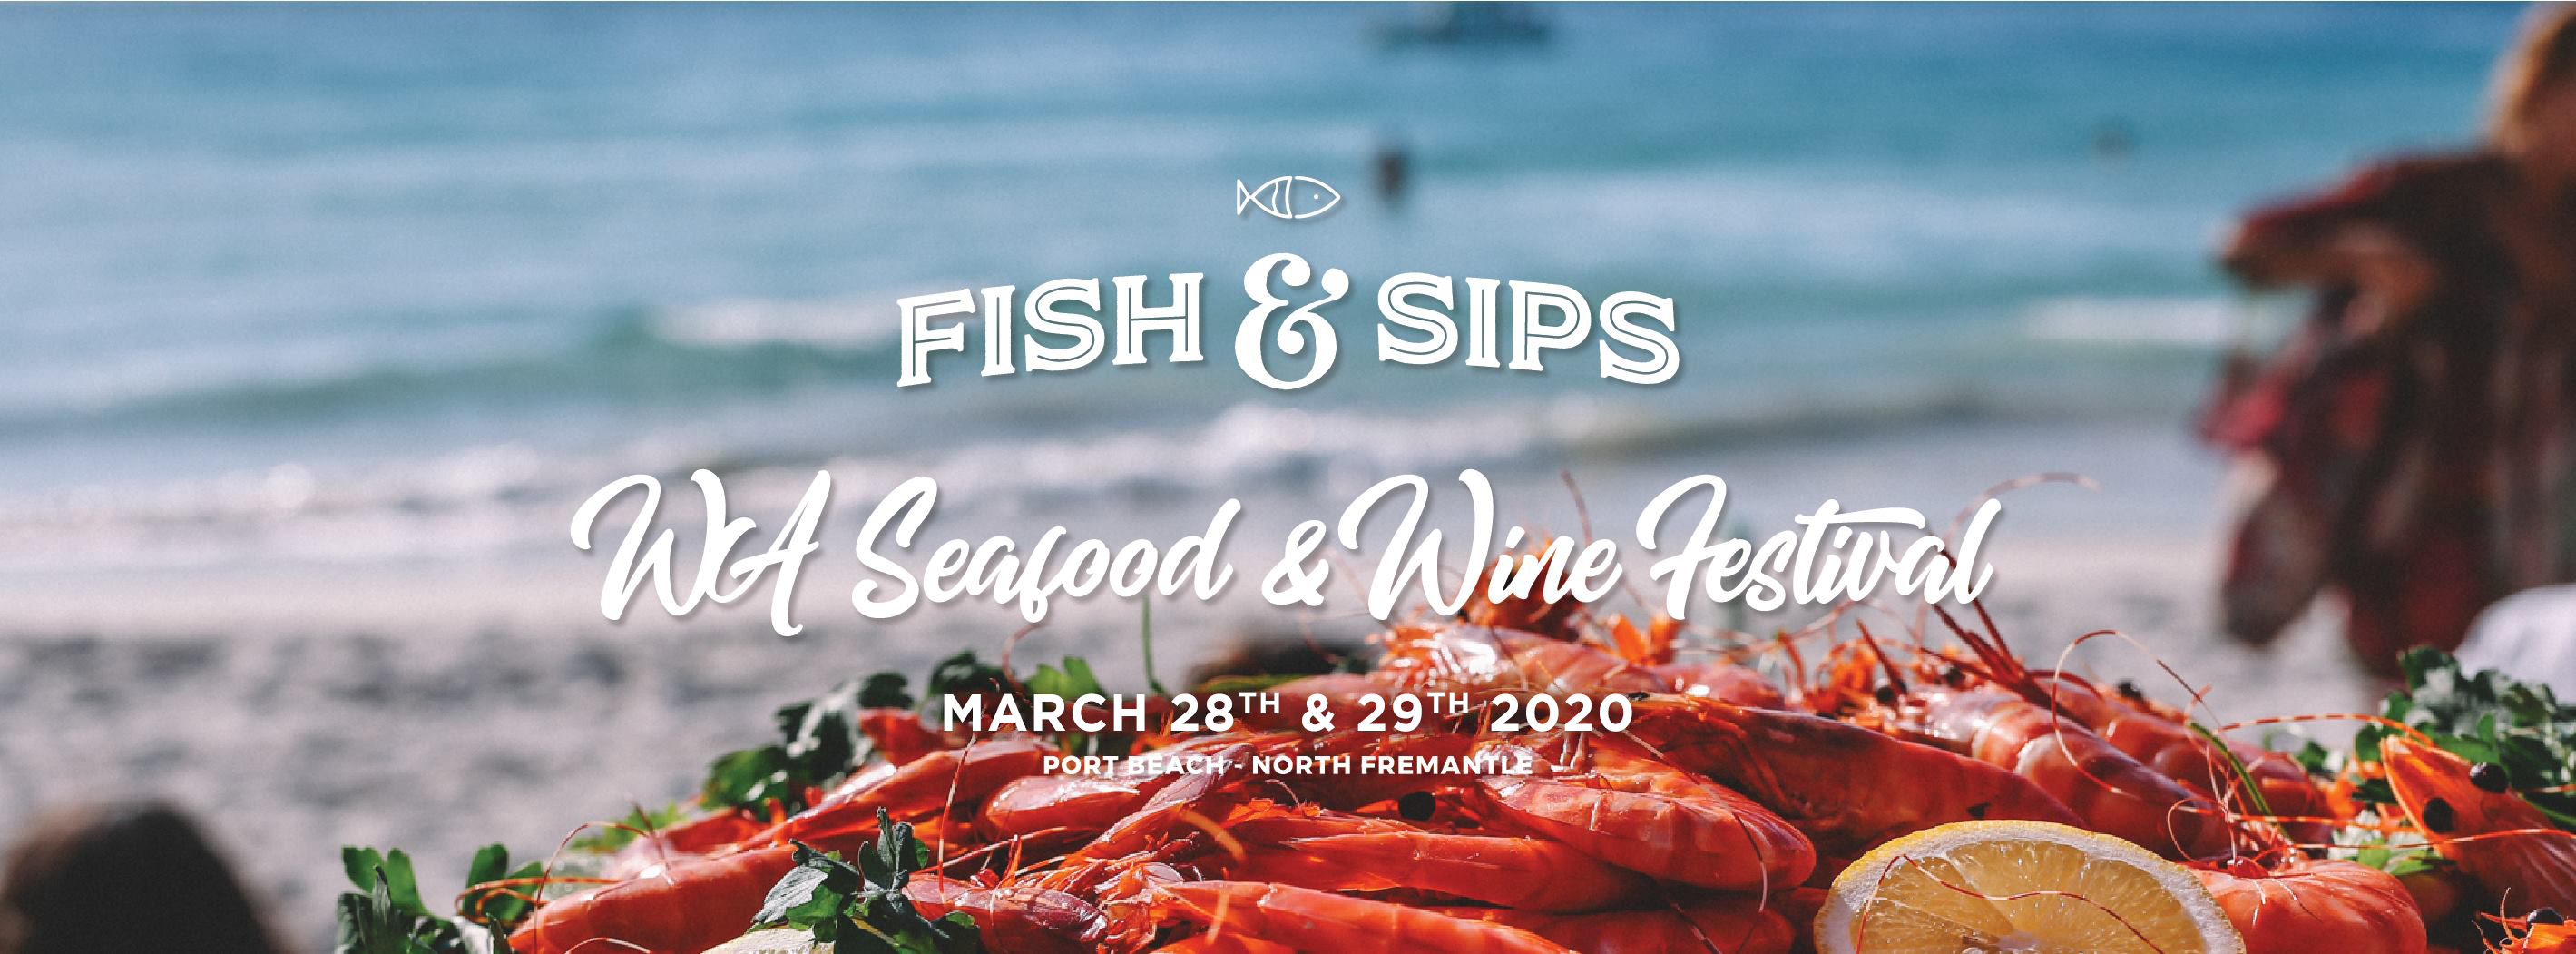 Tickets for Fish & Sips Festival 2020 in North Fremantle from Ticketbooth